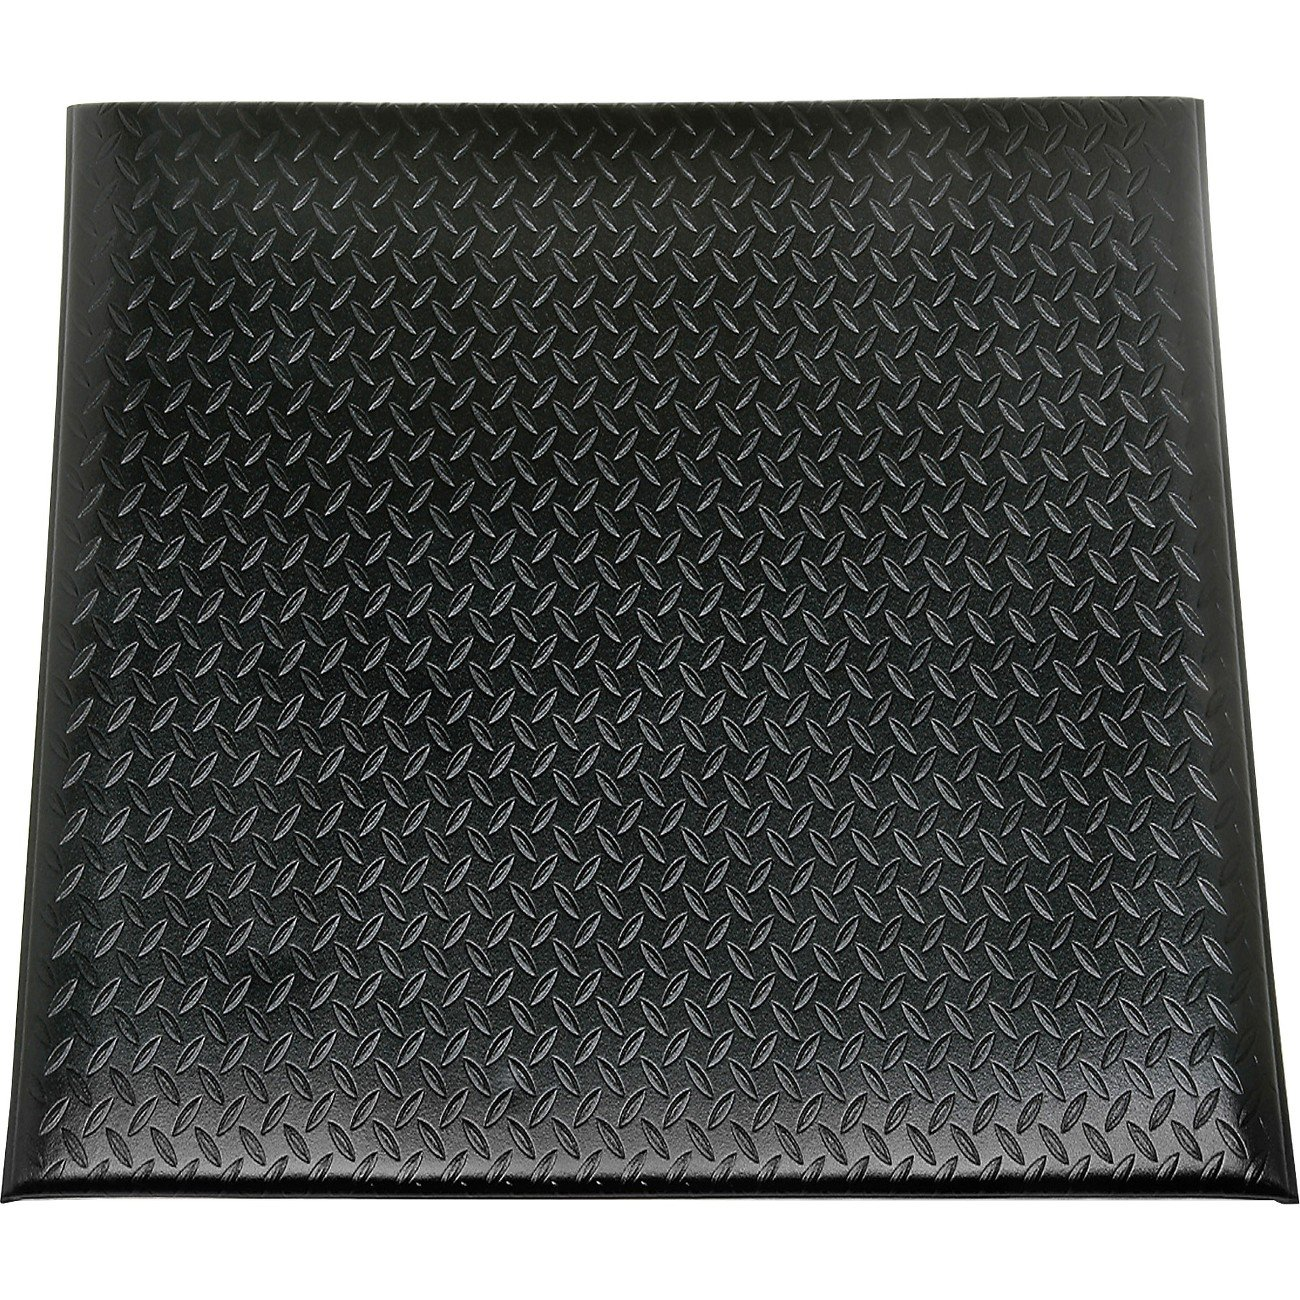 SKILCRAFT 7220-01-582-6231 Industrial Duty Anti Fatigue Mat with Yellow Safety Stripe, 3' Length x 2' Width, 9/16'' Thick, Black by Skilcraft